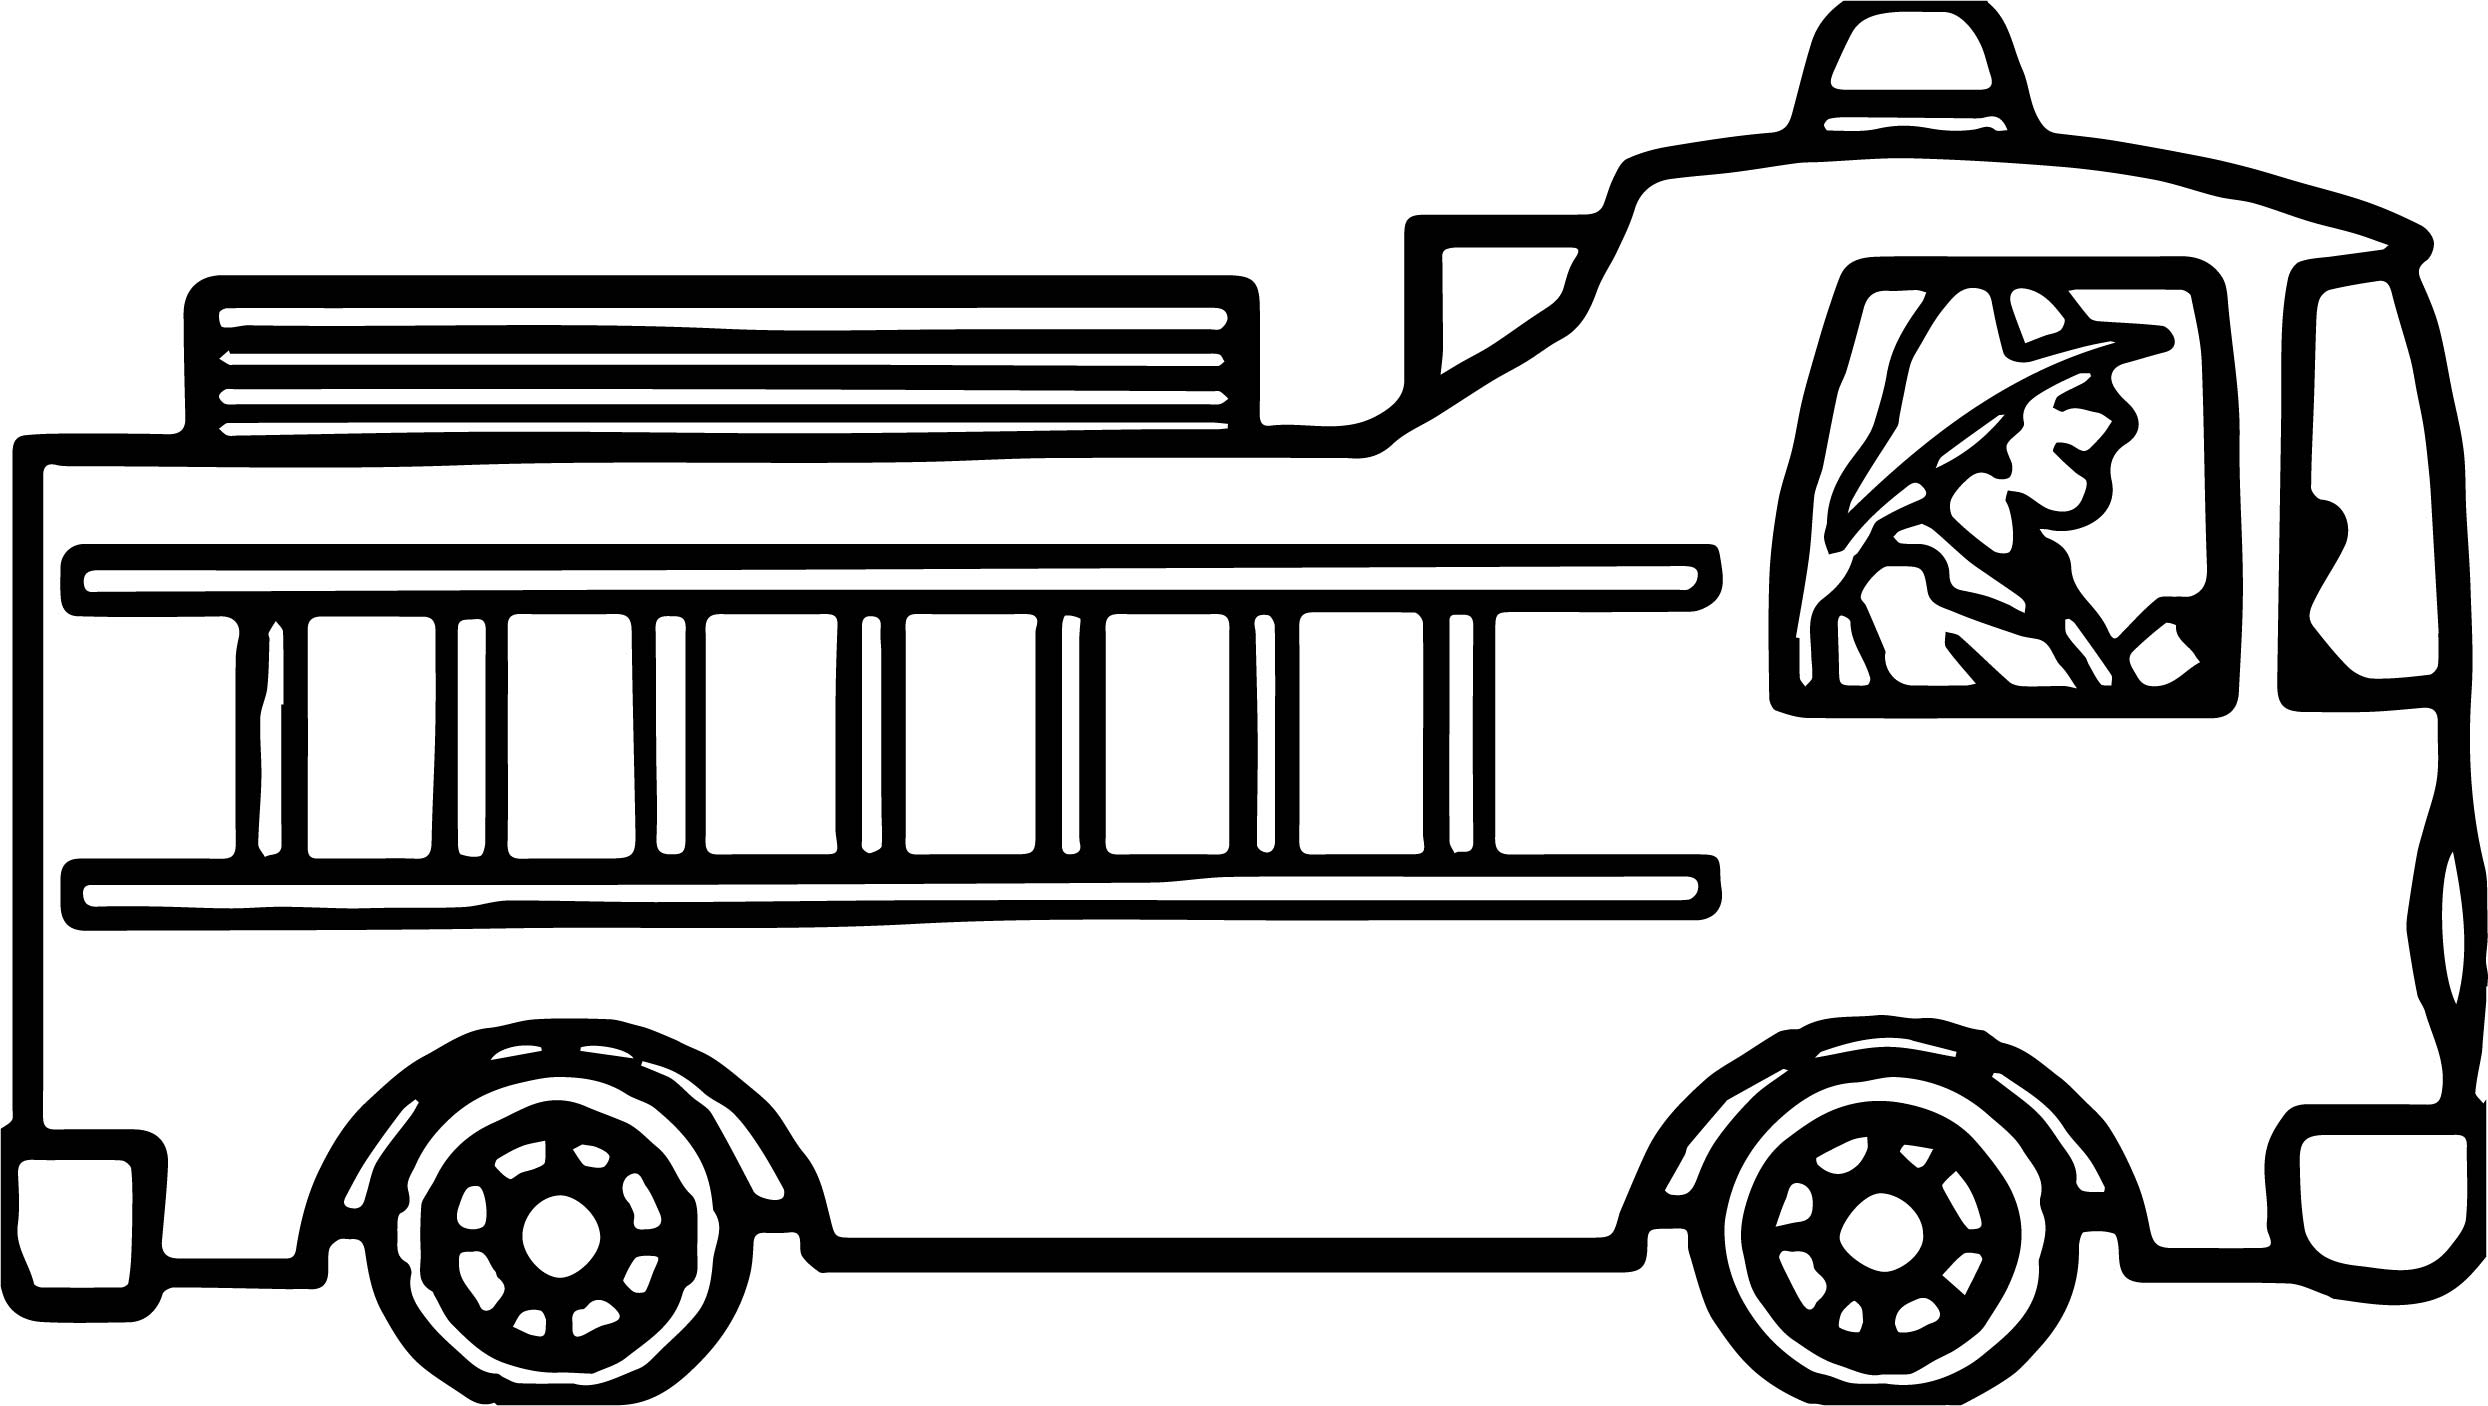 drive fire truck coloring page - Fire Truck Coloring Page